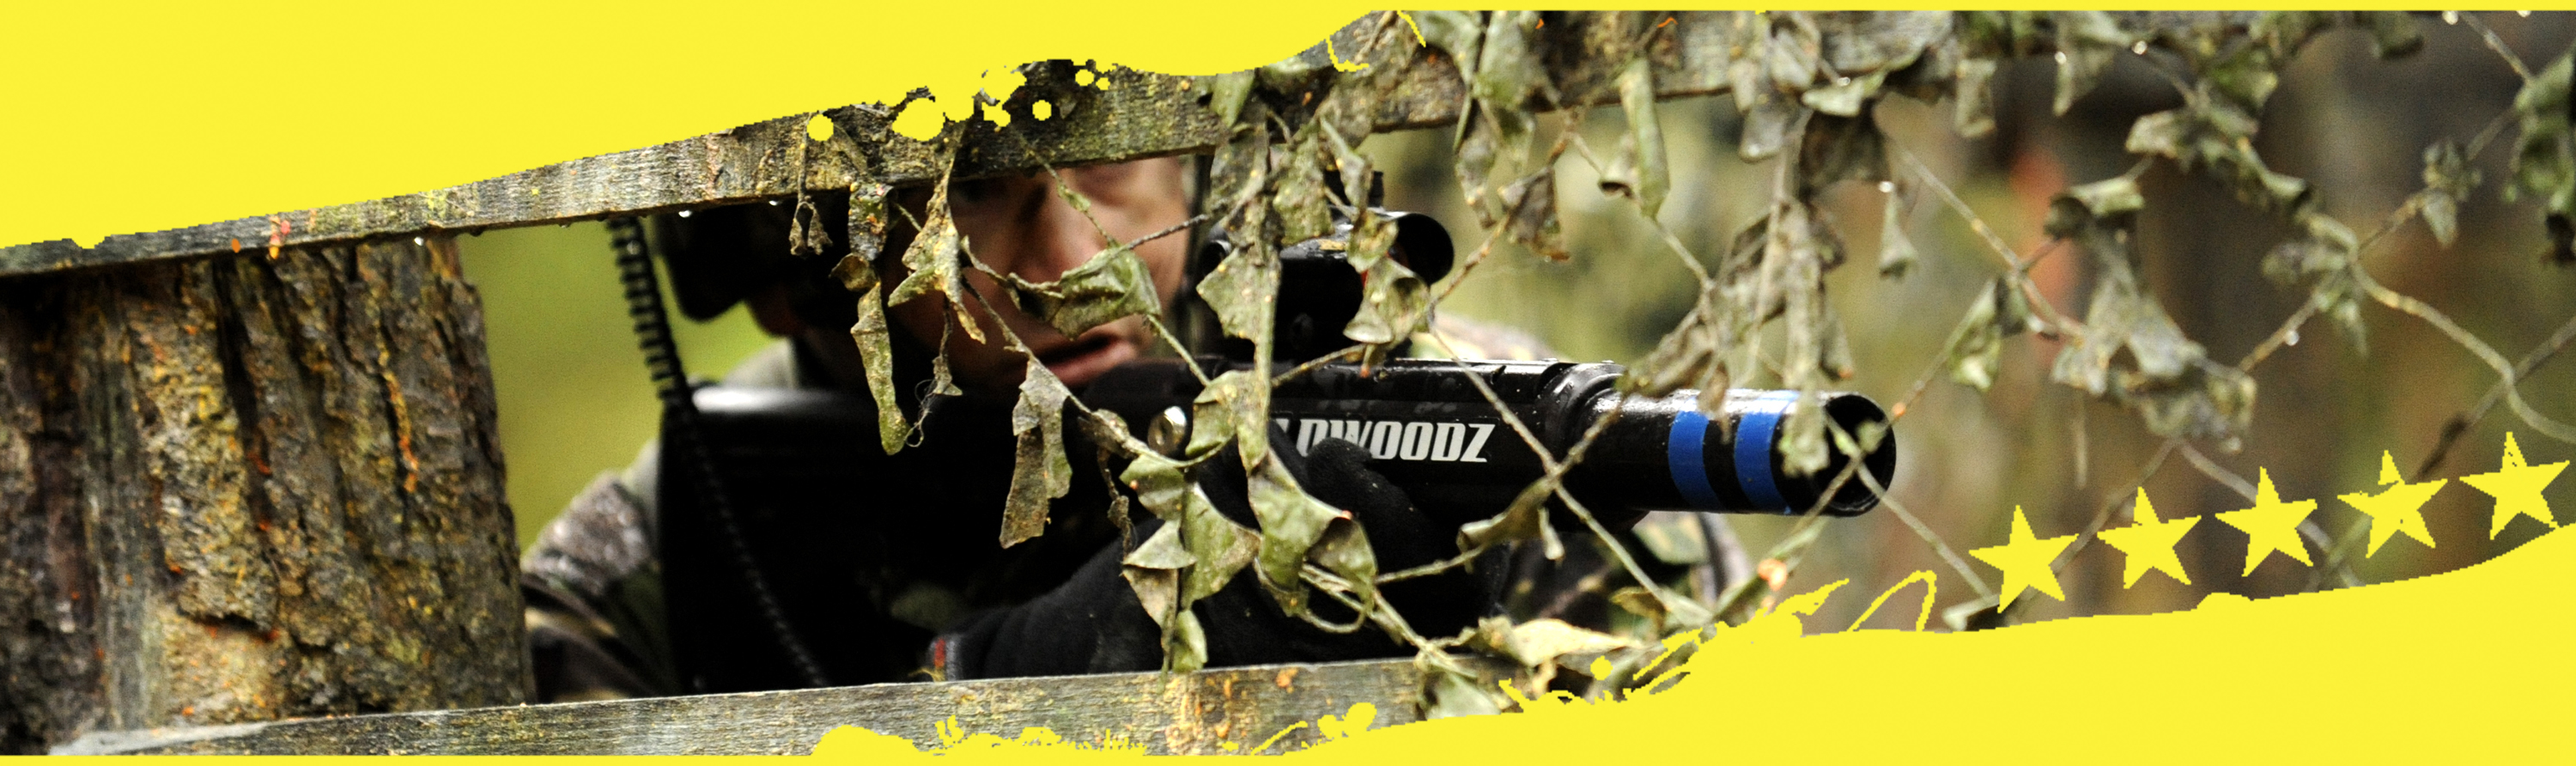 We have created the Highlands most exciting outdoor activities venue! World class Paintball, Lasertag and Archery, Axe Throwing and Bushcraft